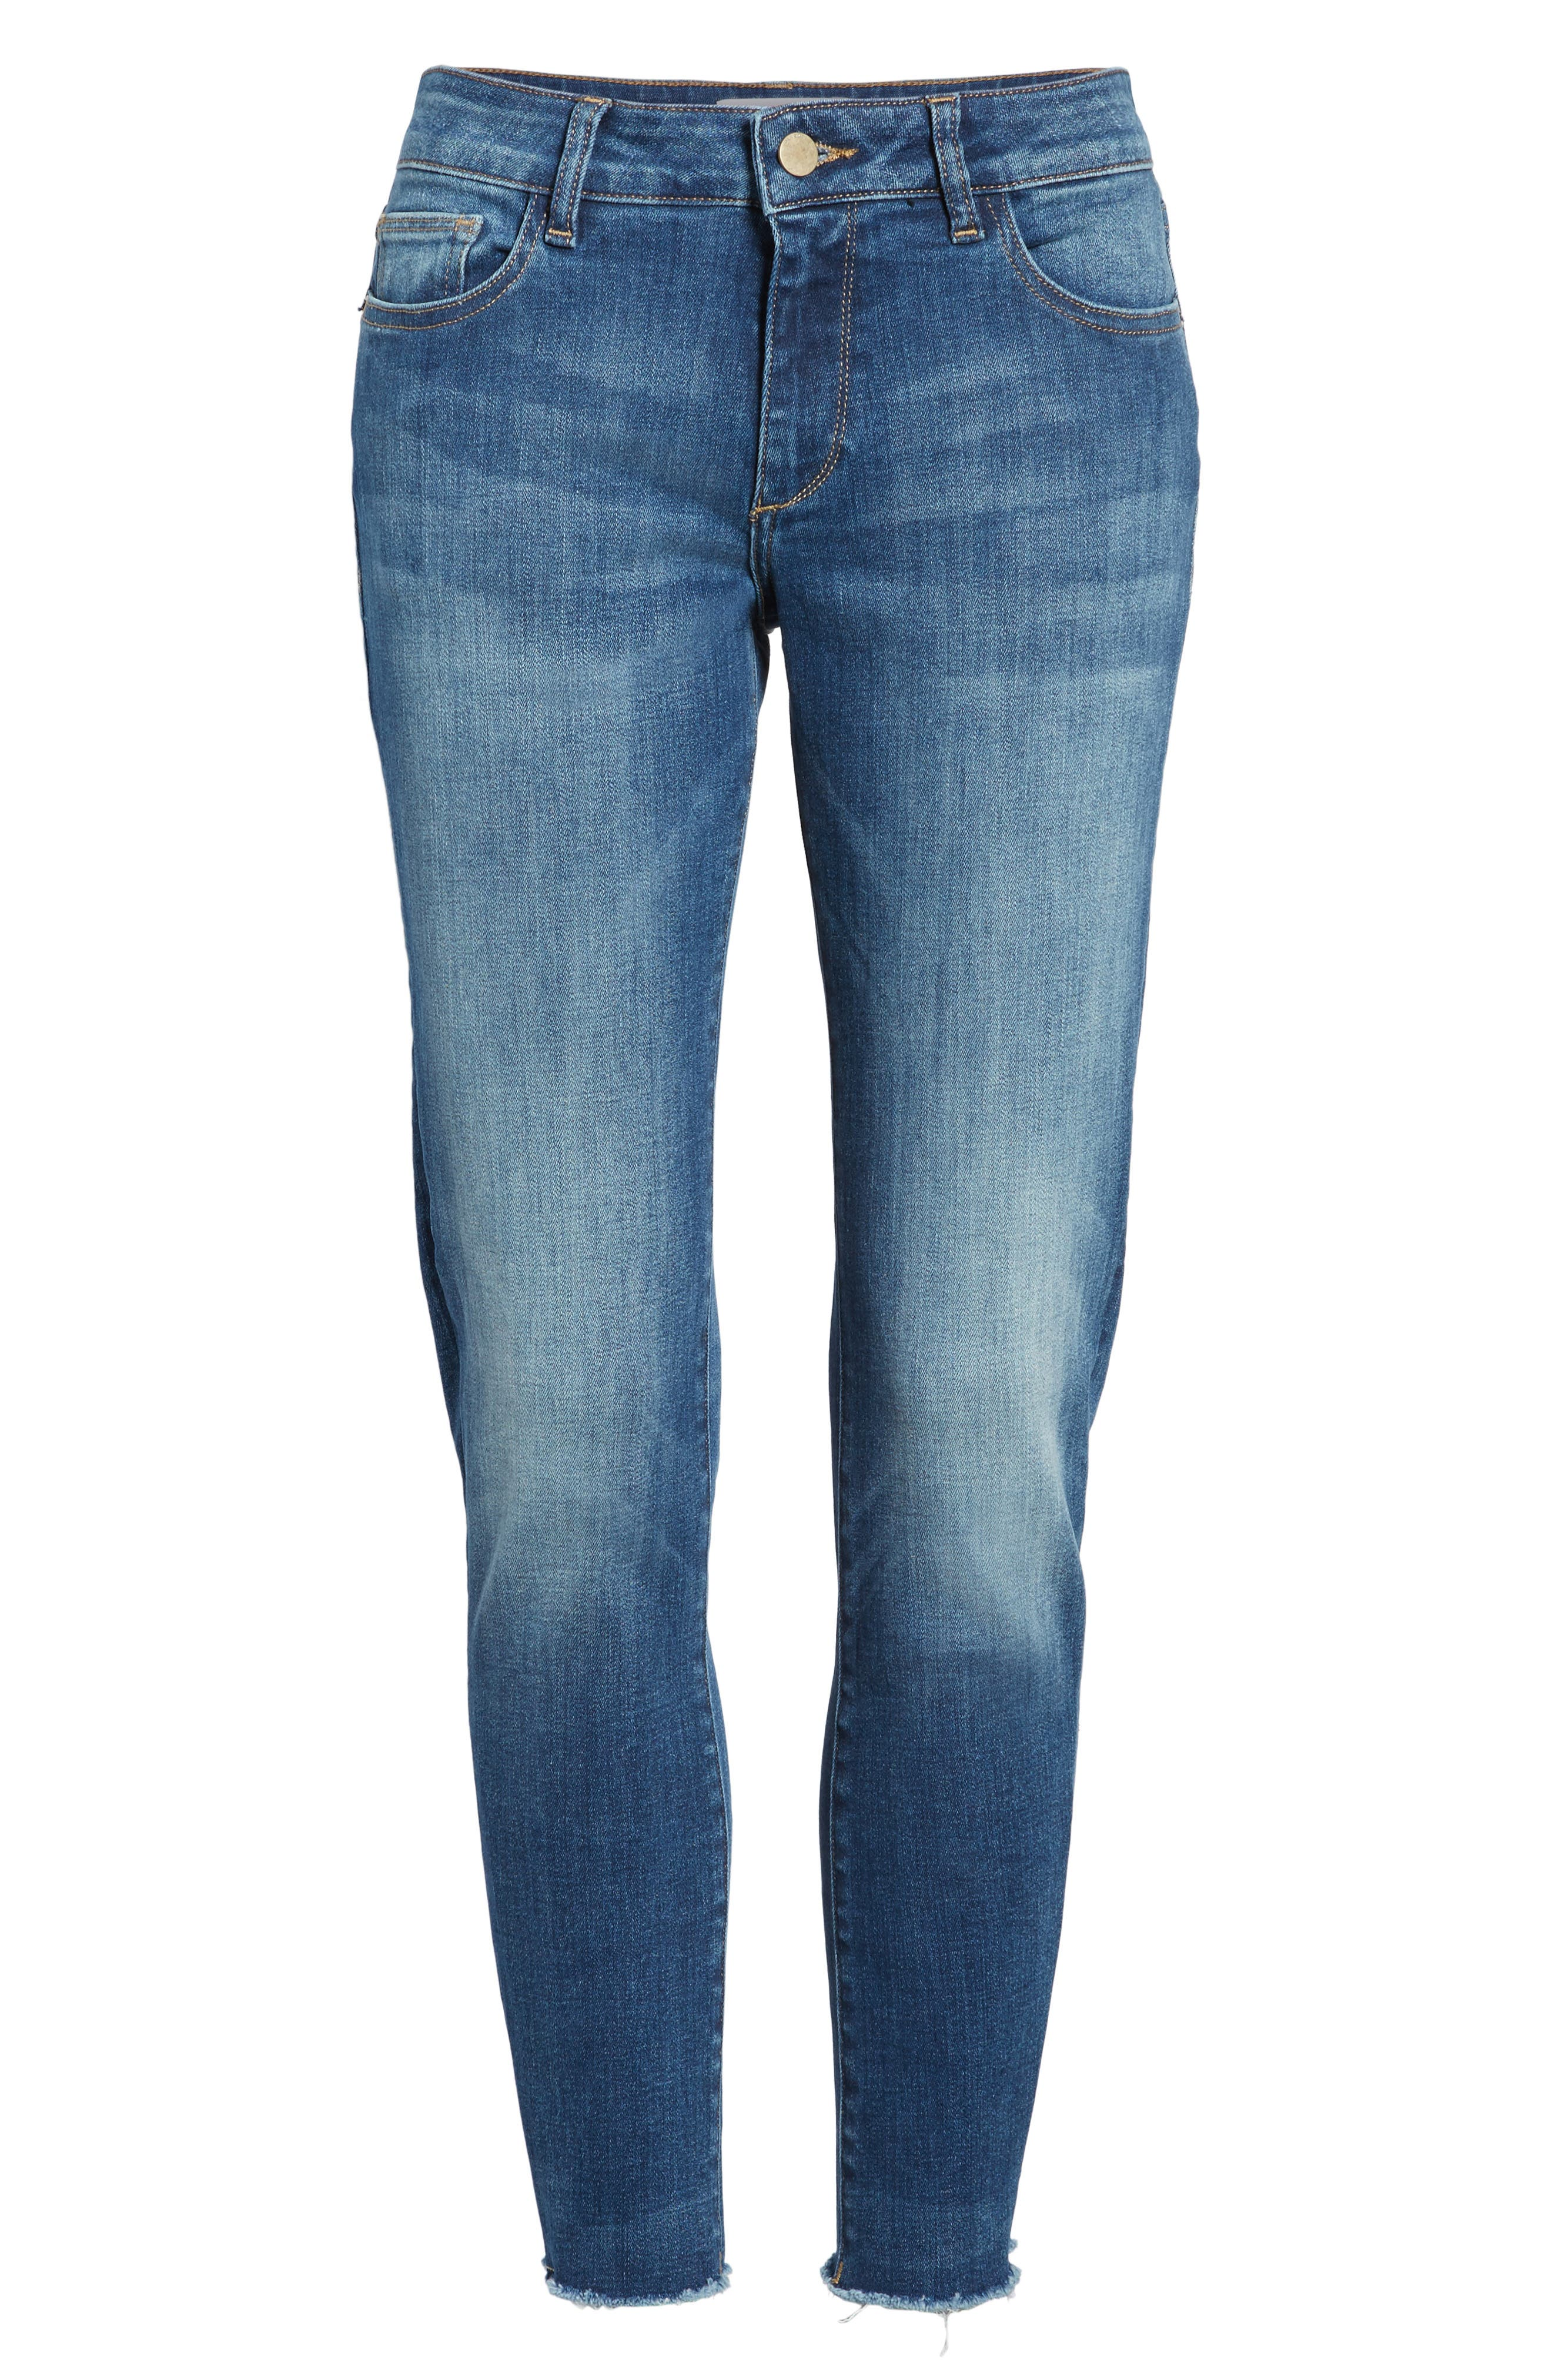 Coco Curvy Ankle Skinny Jeans,                             Alternate thumbnail 6, color,                             426